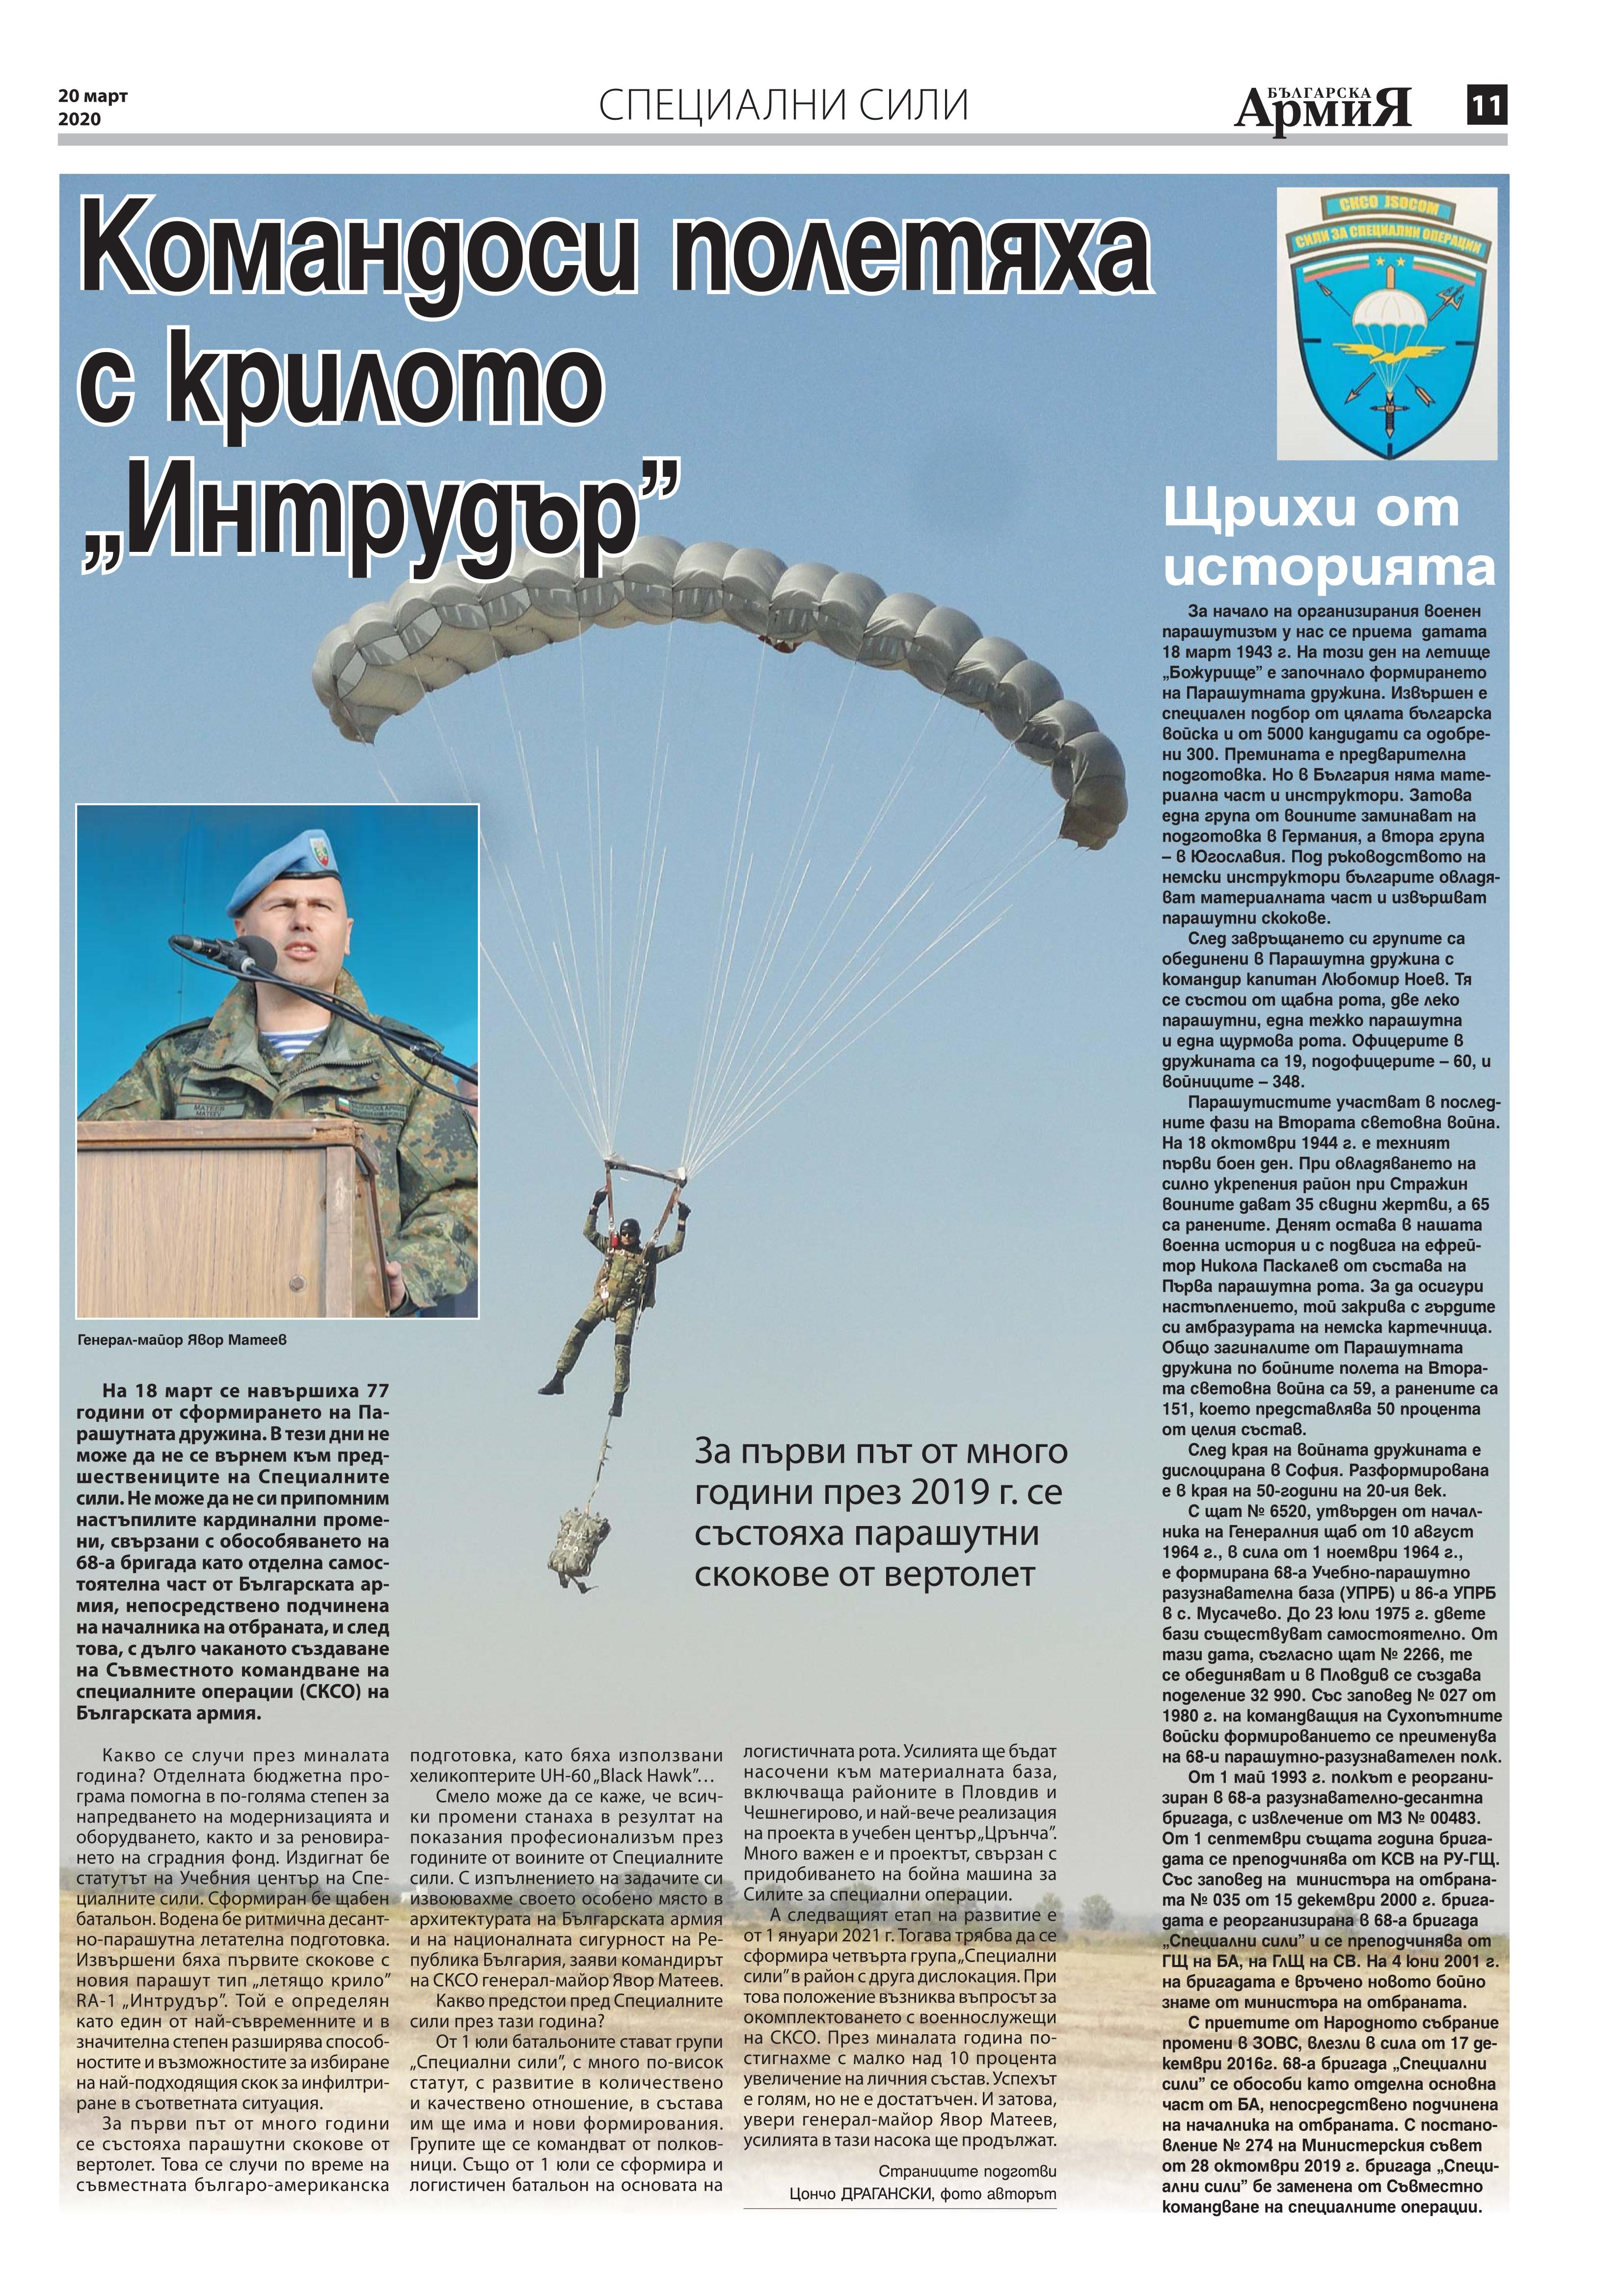 https://www.armymedia.bg/wp-content/uploads/2015/06/11.page1_-130.jpg